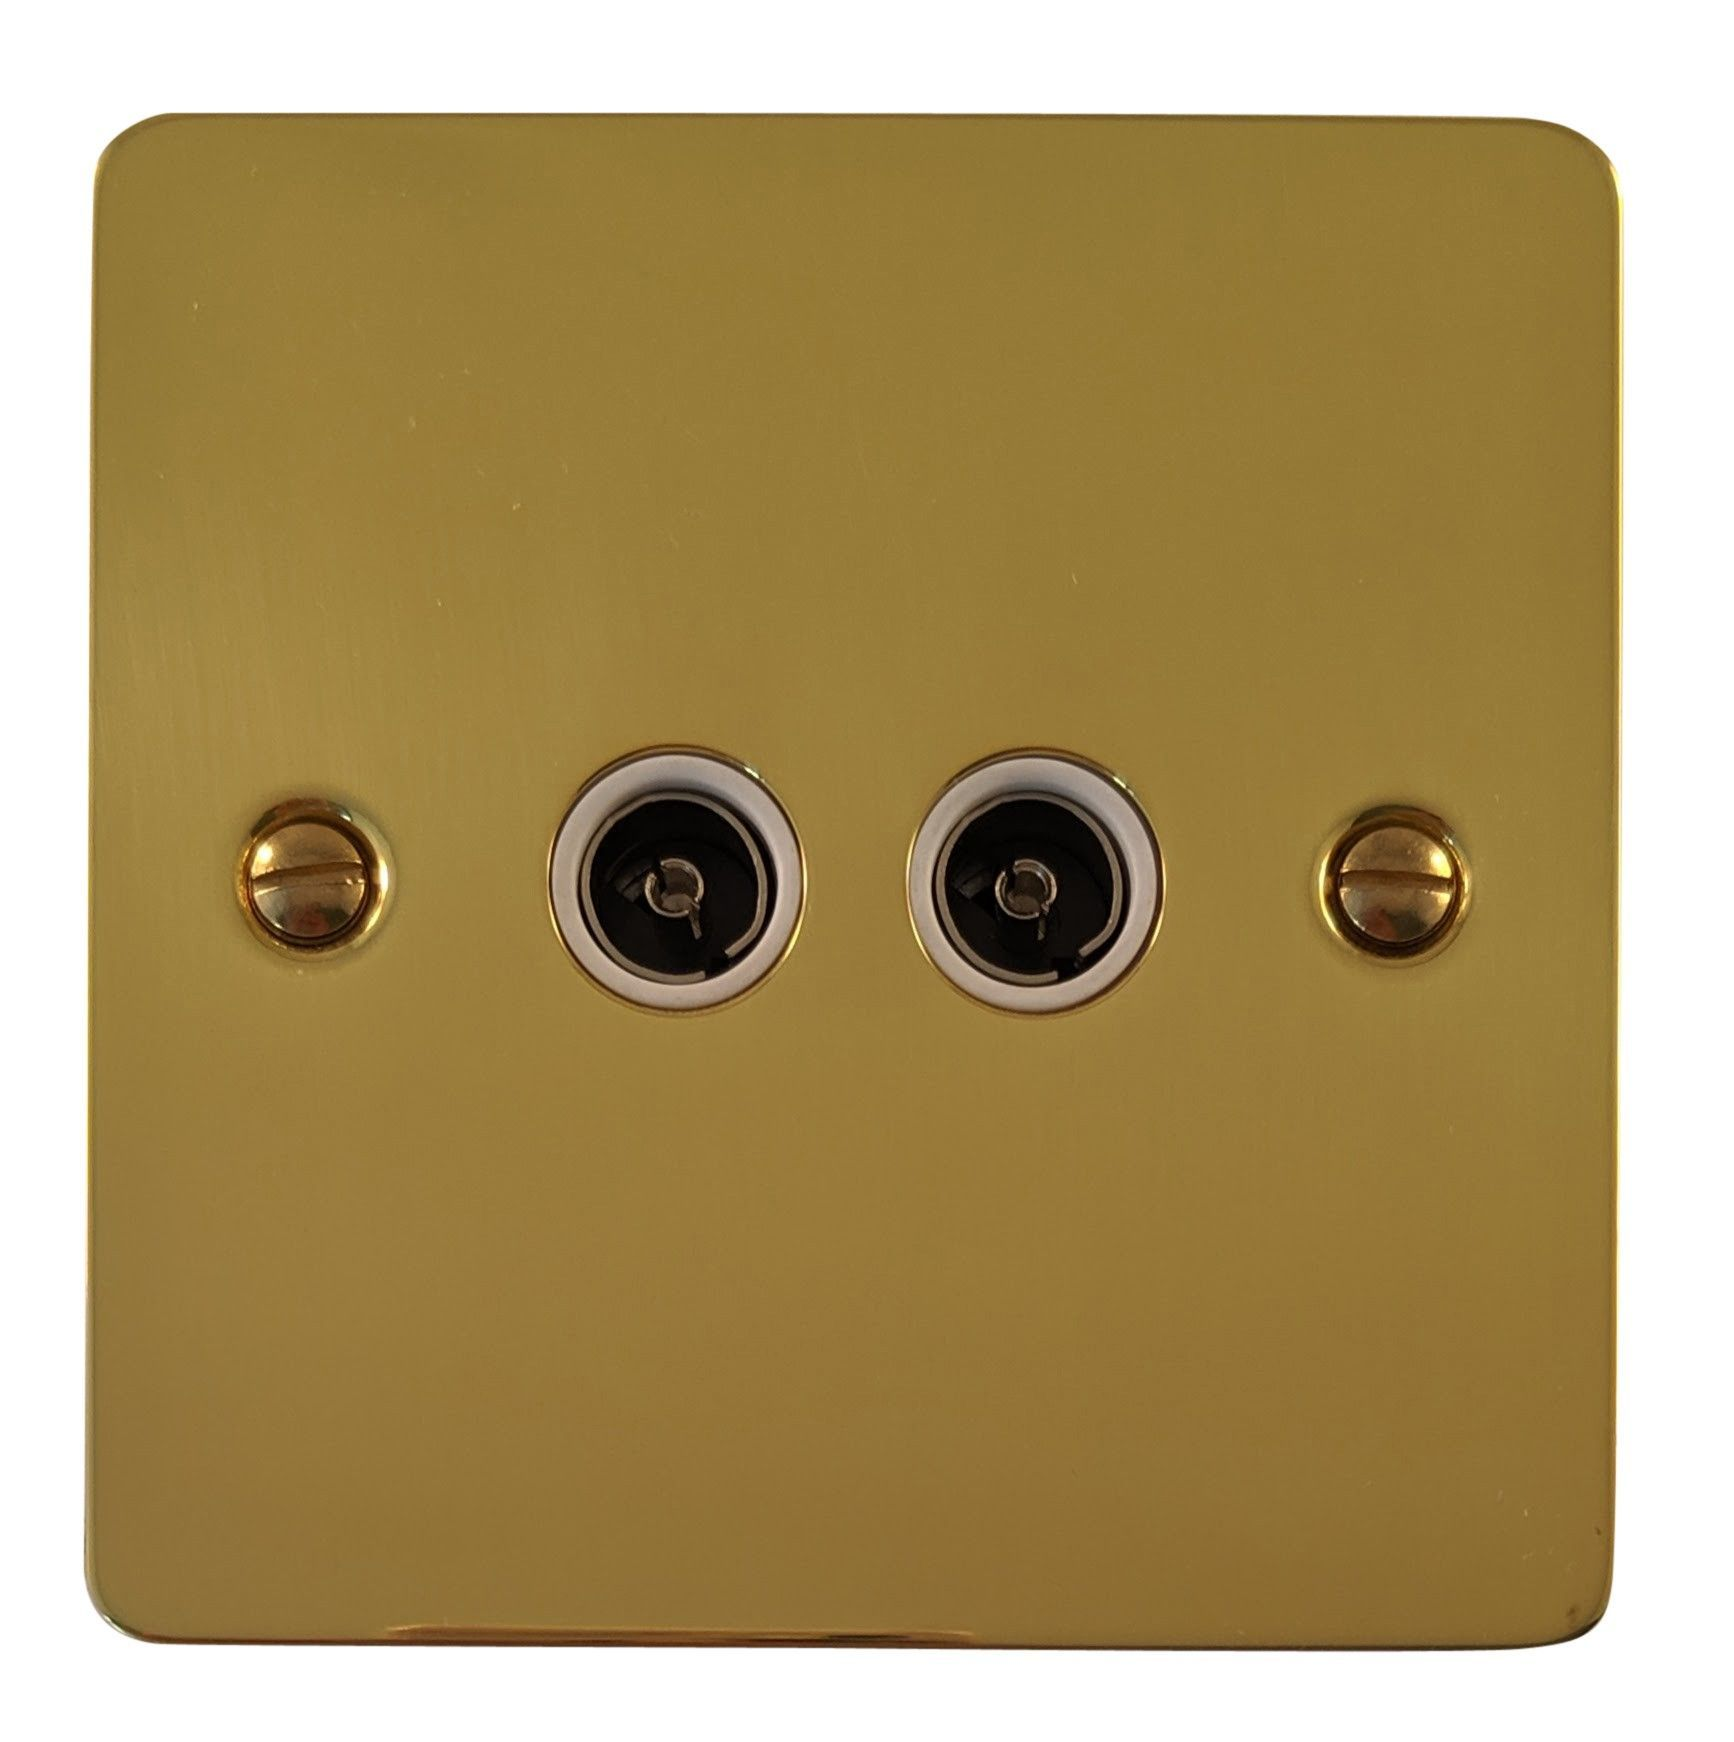 G&H FB36W Flat Plate Polished Brass 2 Gang TV Coax Socket Point